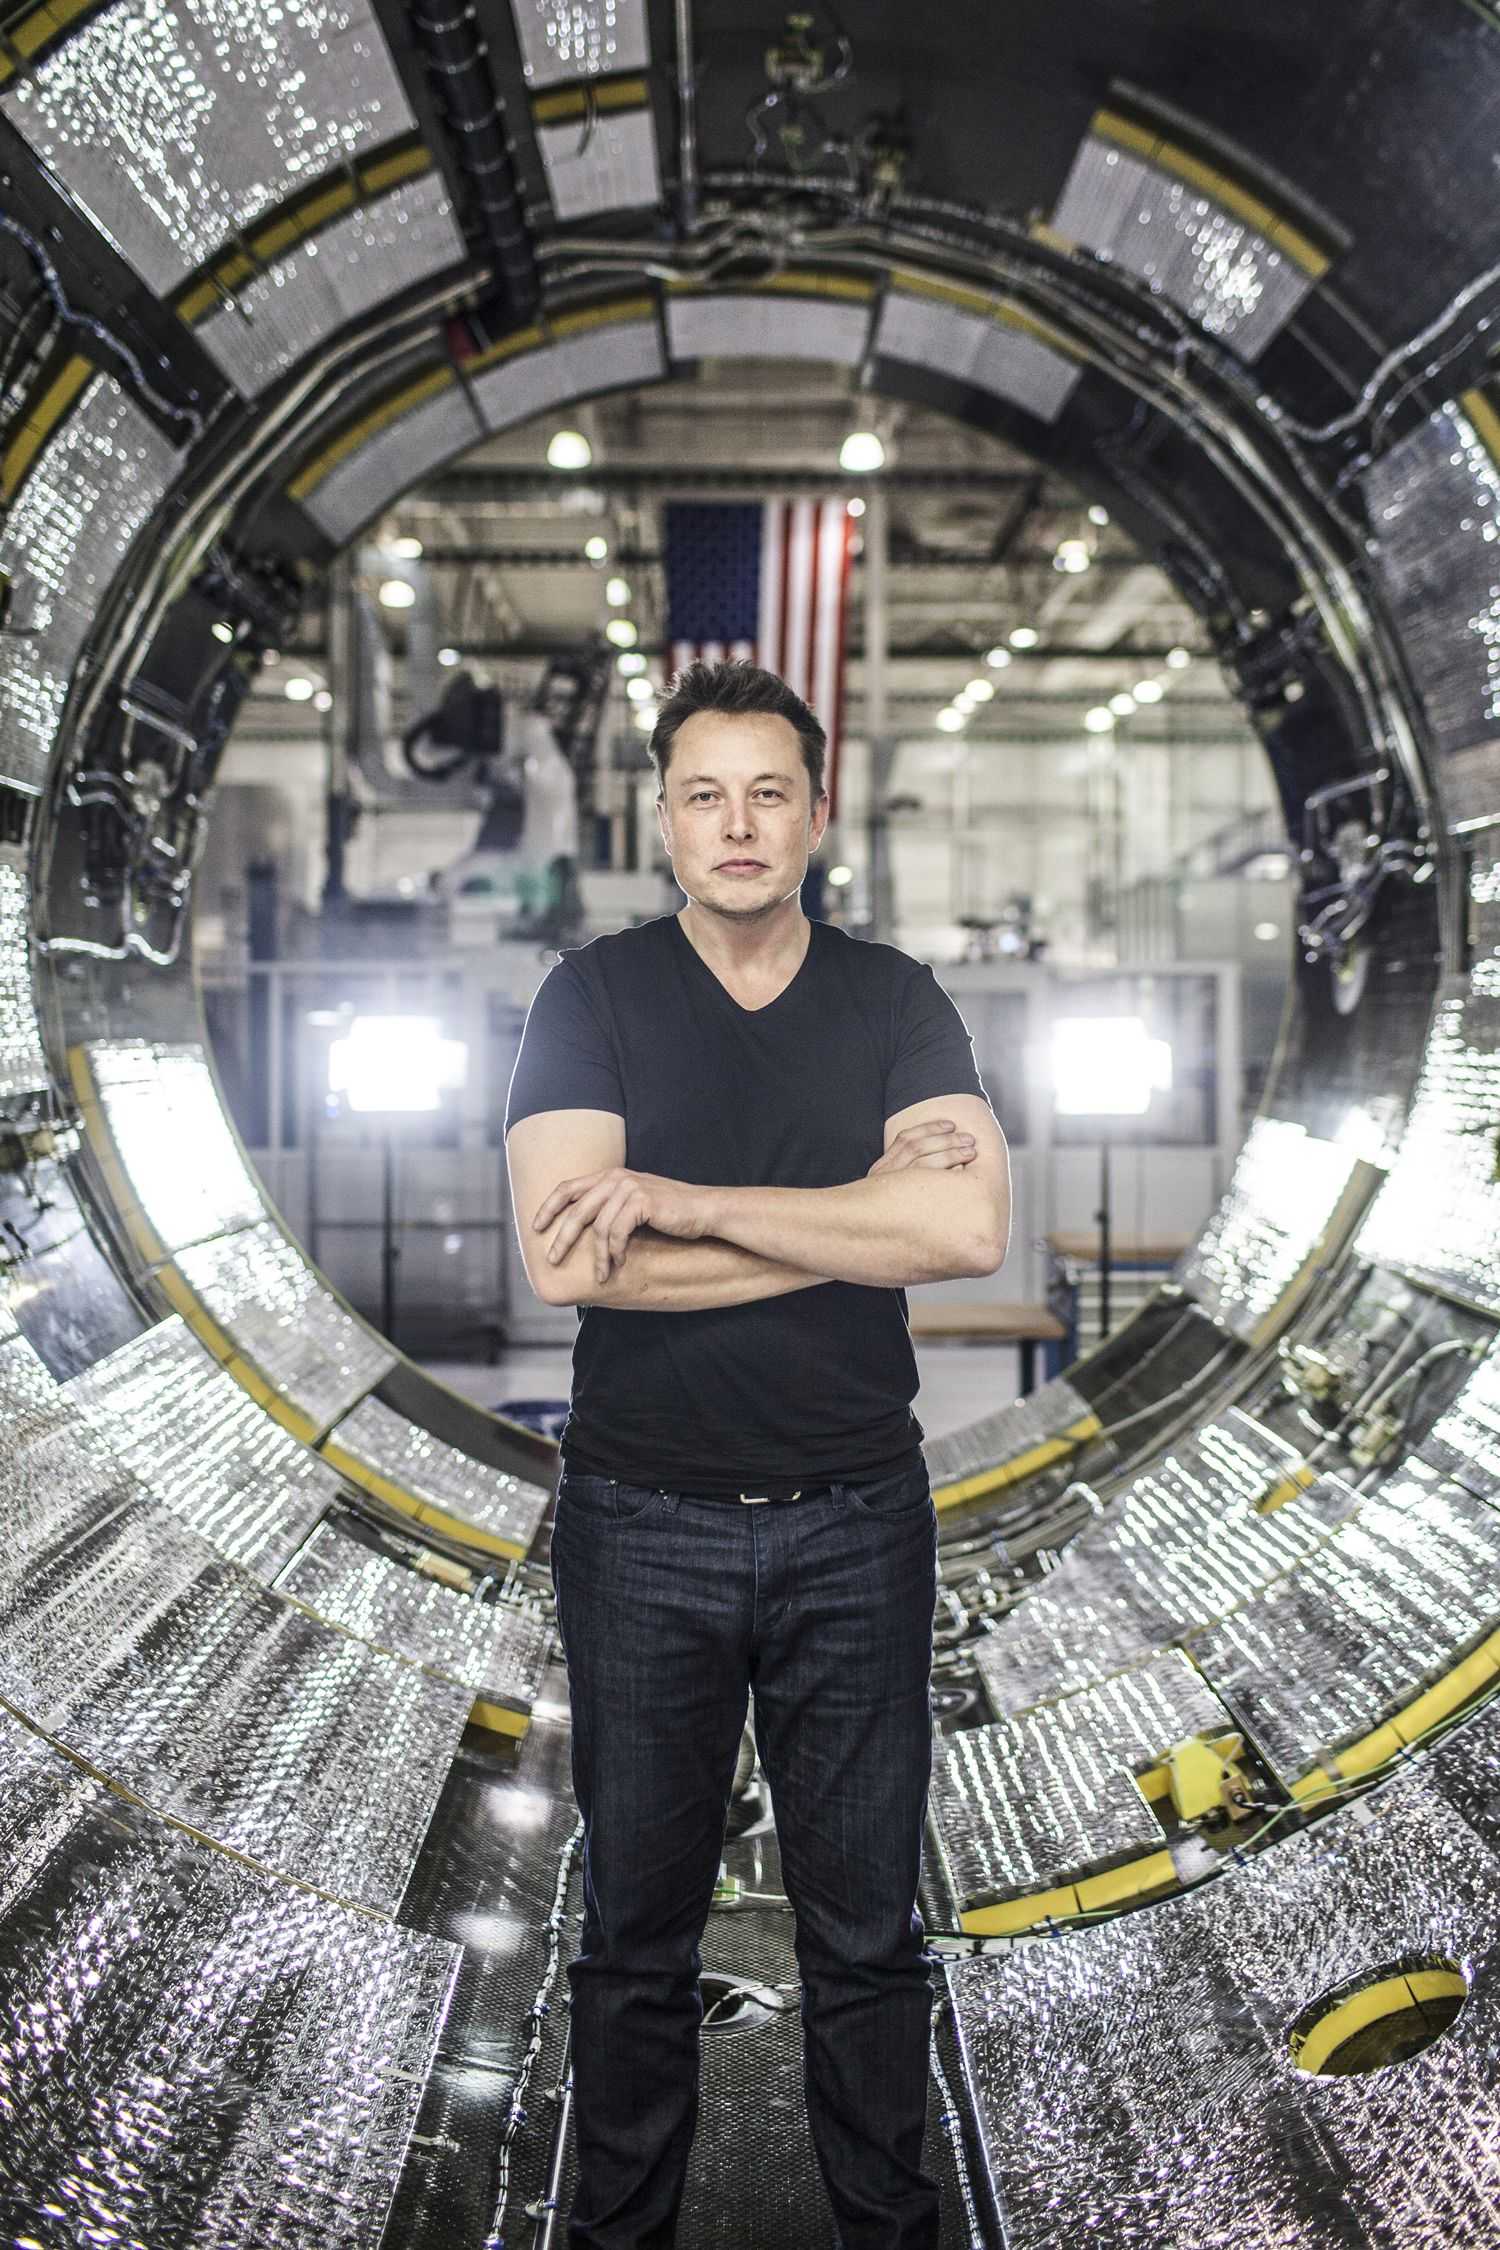 "<p>Elon Musk wants to go to Mars, and he's built a company with the experience to do it. The contracts with NASA for supply runs are old news. SpaceX has moved on to experiments with recoverable rockets and GPS-guided landing platforms. Musk has already announced his intention to reveal the company's Mars Colonial Transporter before the end of the year. He says they have a spacesuit in the works too.</p><p><span></span><strong>Vegas odds: 5:1.</strong> ""They have the desire and the funds.""</p>"